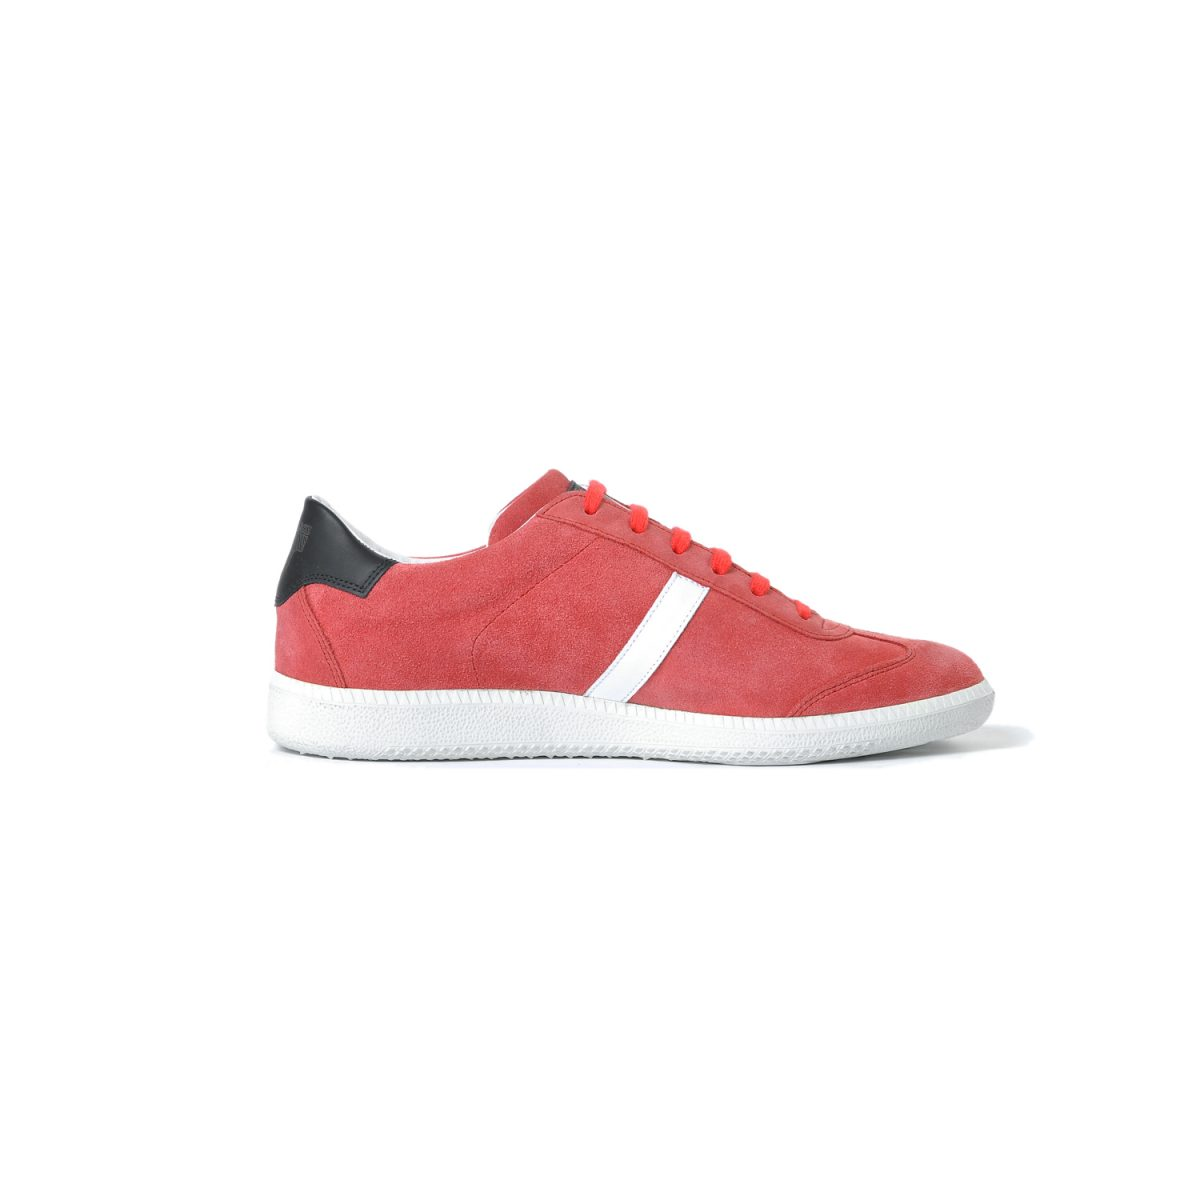 Tisza shoes - Comfort - Red-black-white